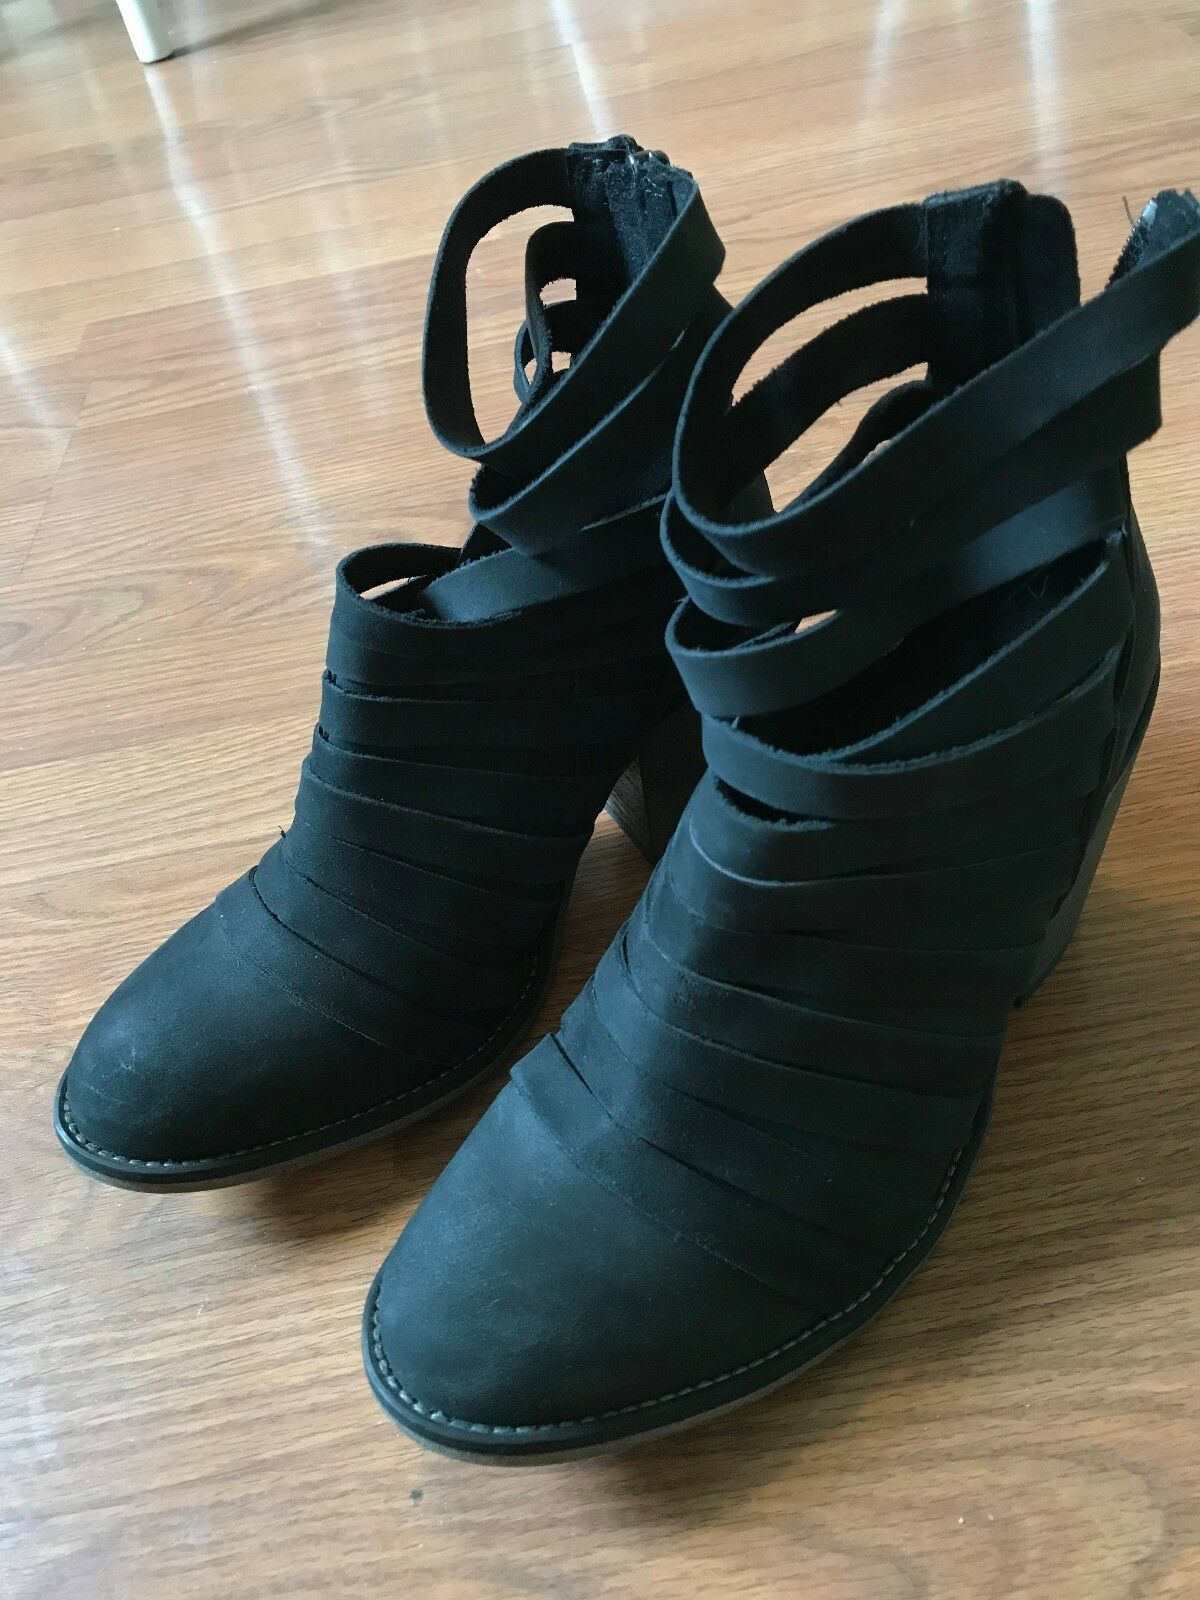 WOMEN'S FREE PEOPLE HYBRID STRAPPY ANKLE BOOTS BOOTIES HEEL BLACK SIZE 37 - US 7